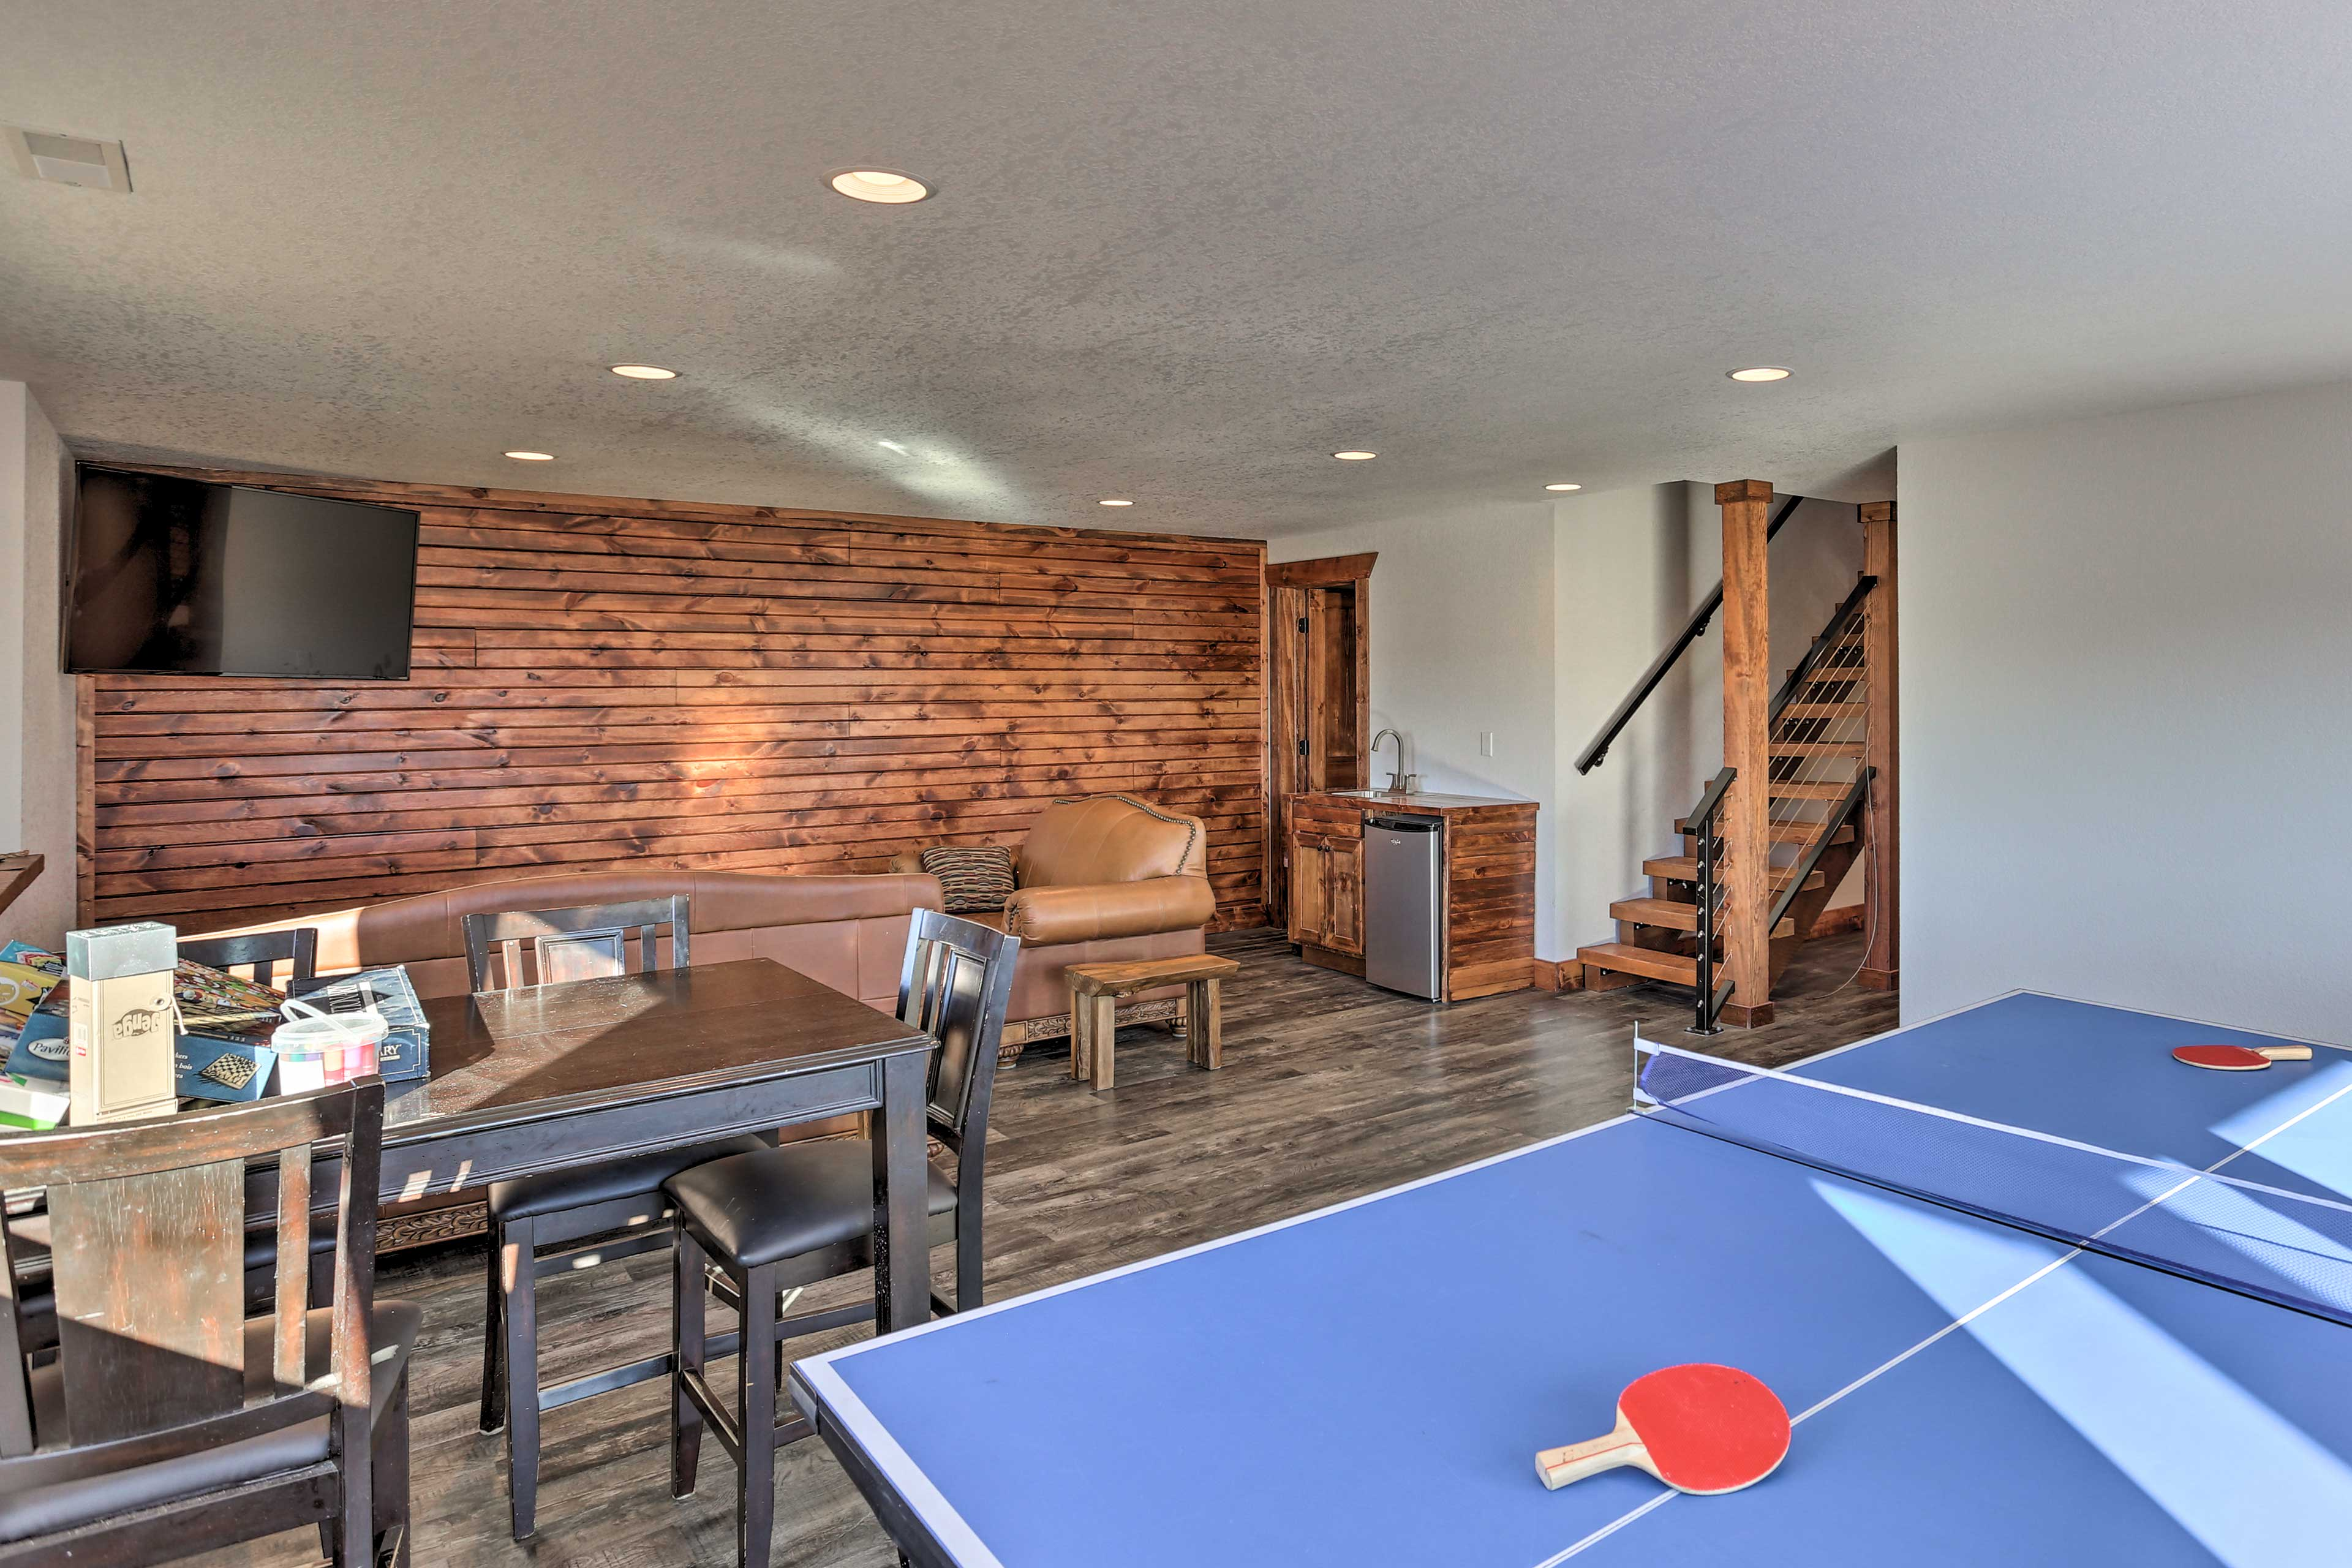 Downstairs, you'll find a separate lounge area with a ping pong table!